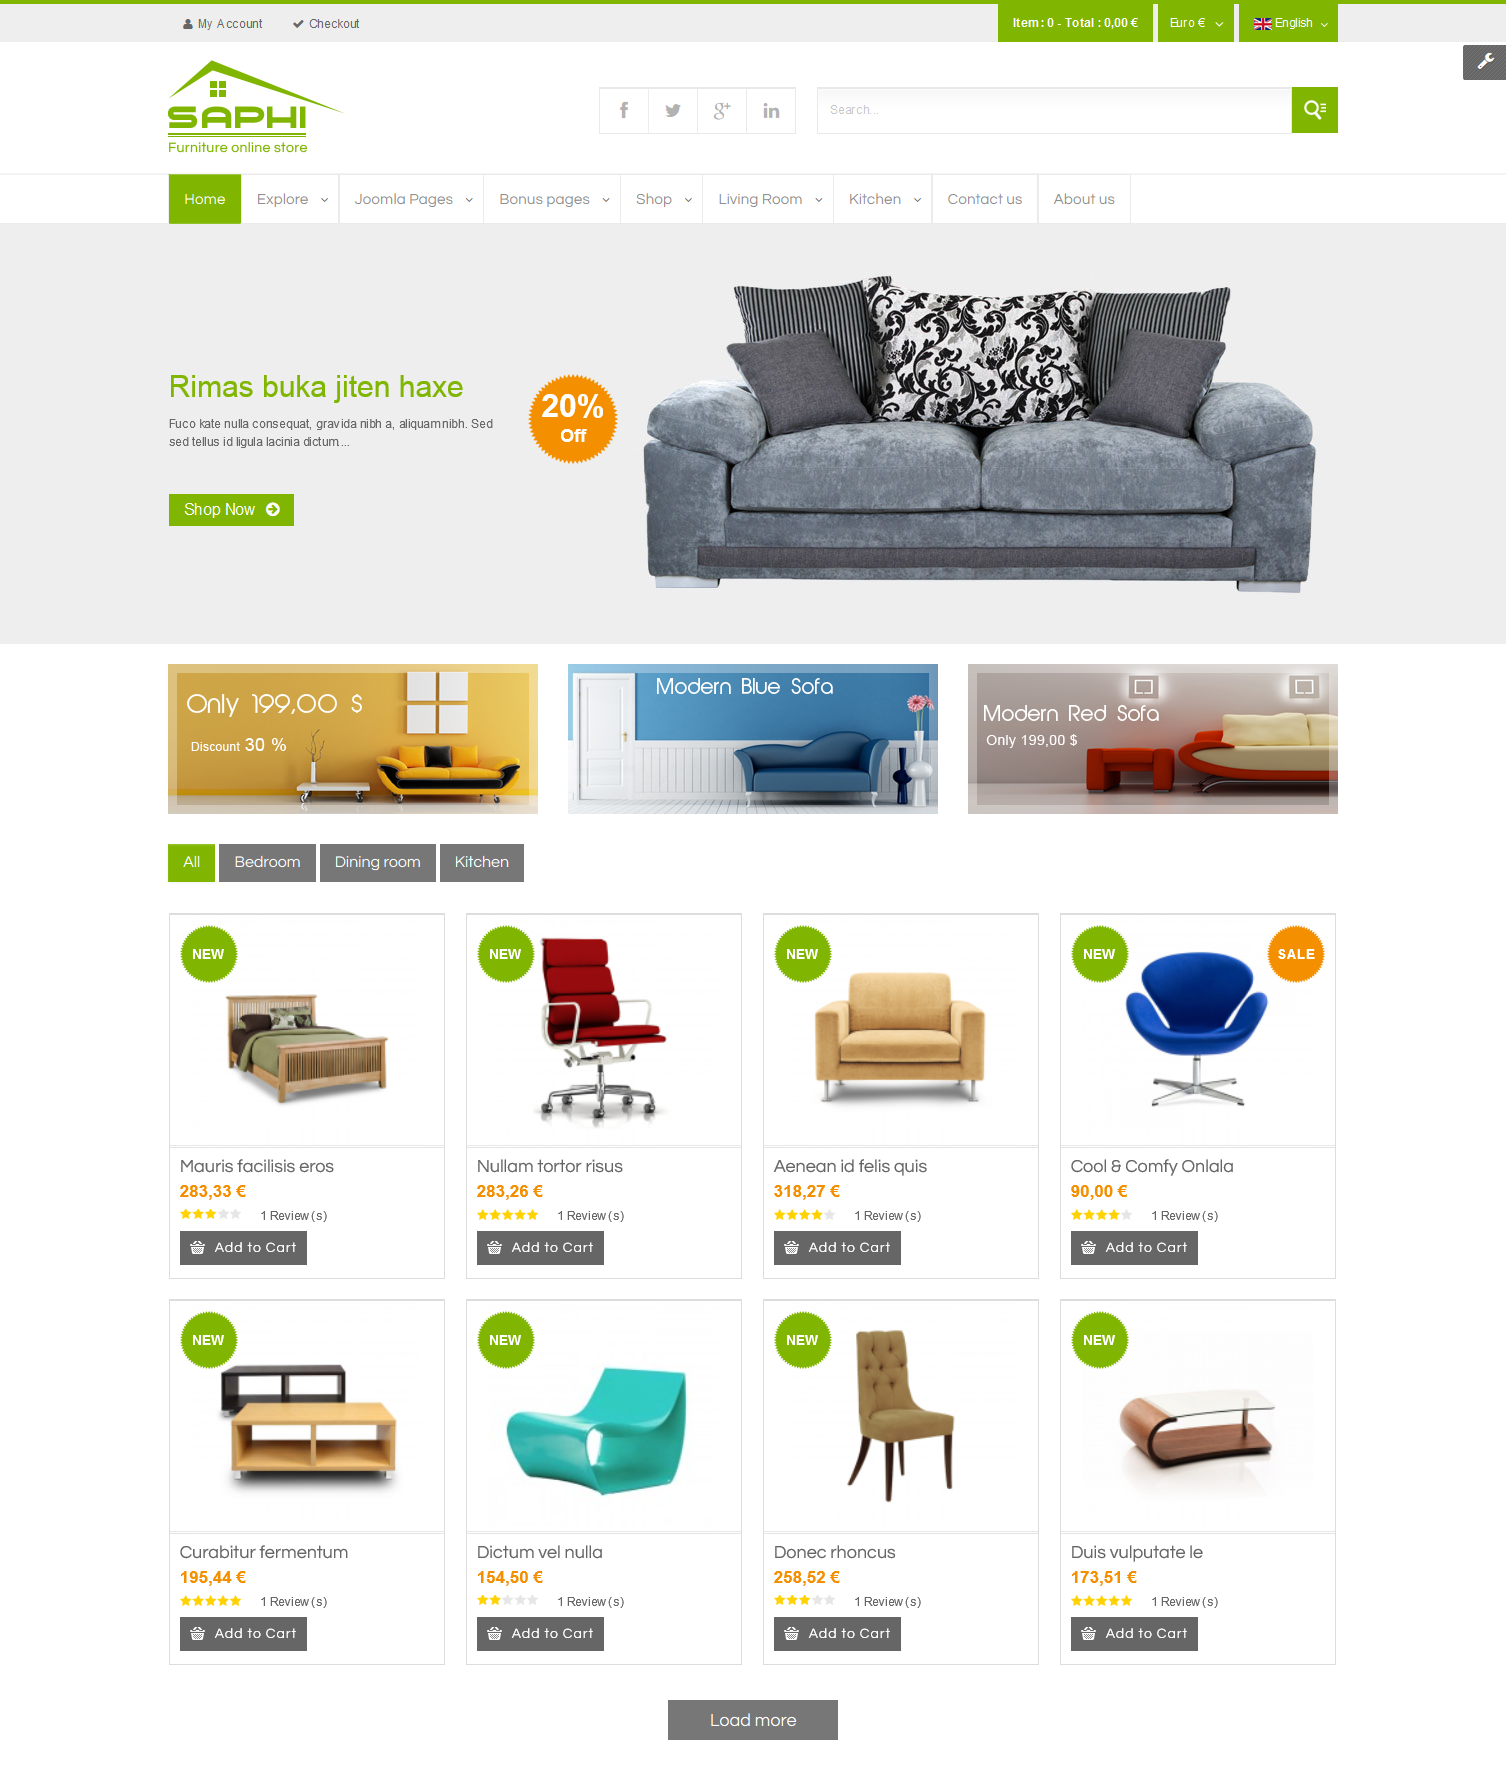 Best 10 virtuemart templates 2015 for your ecommerce site for E commerce sites templates